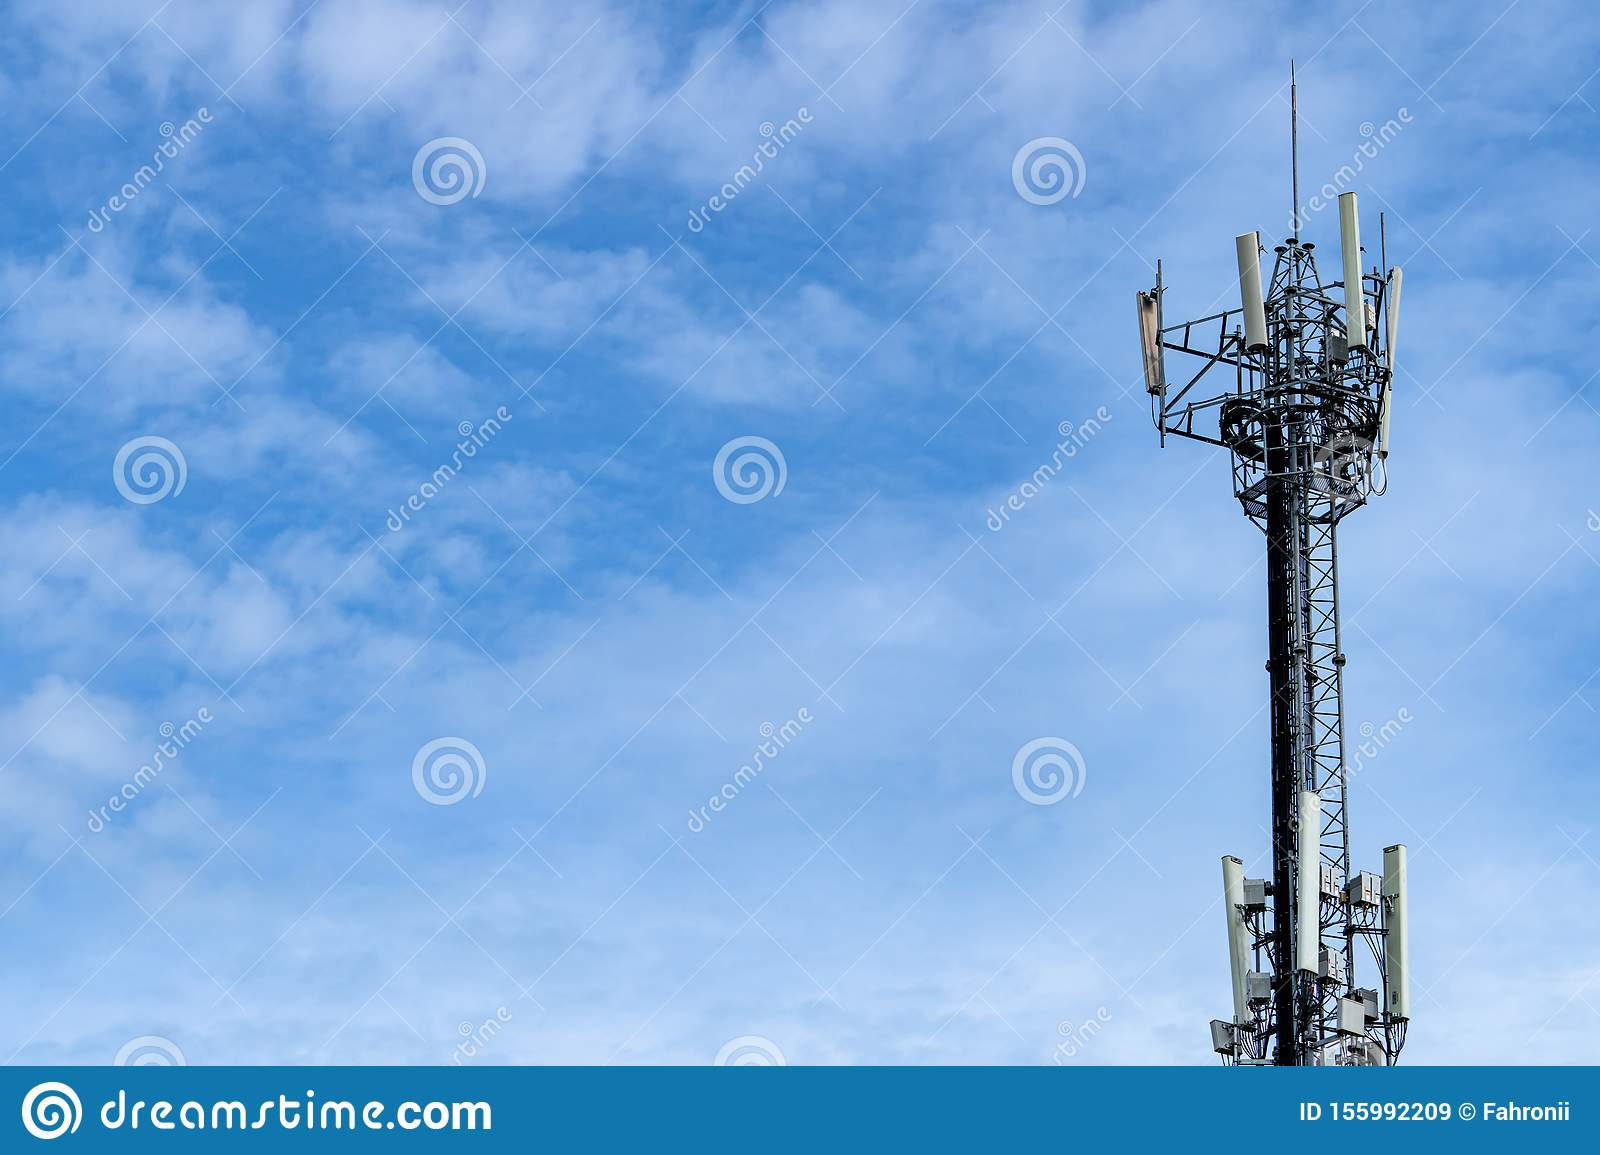 Telecommunication tower with blue sky and white clouds background. Antenna on blue sky. Radio and satellite pole. Communication